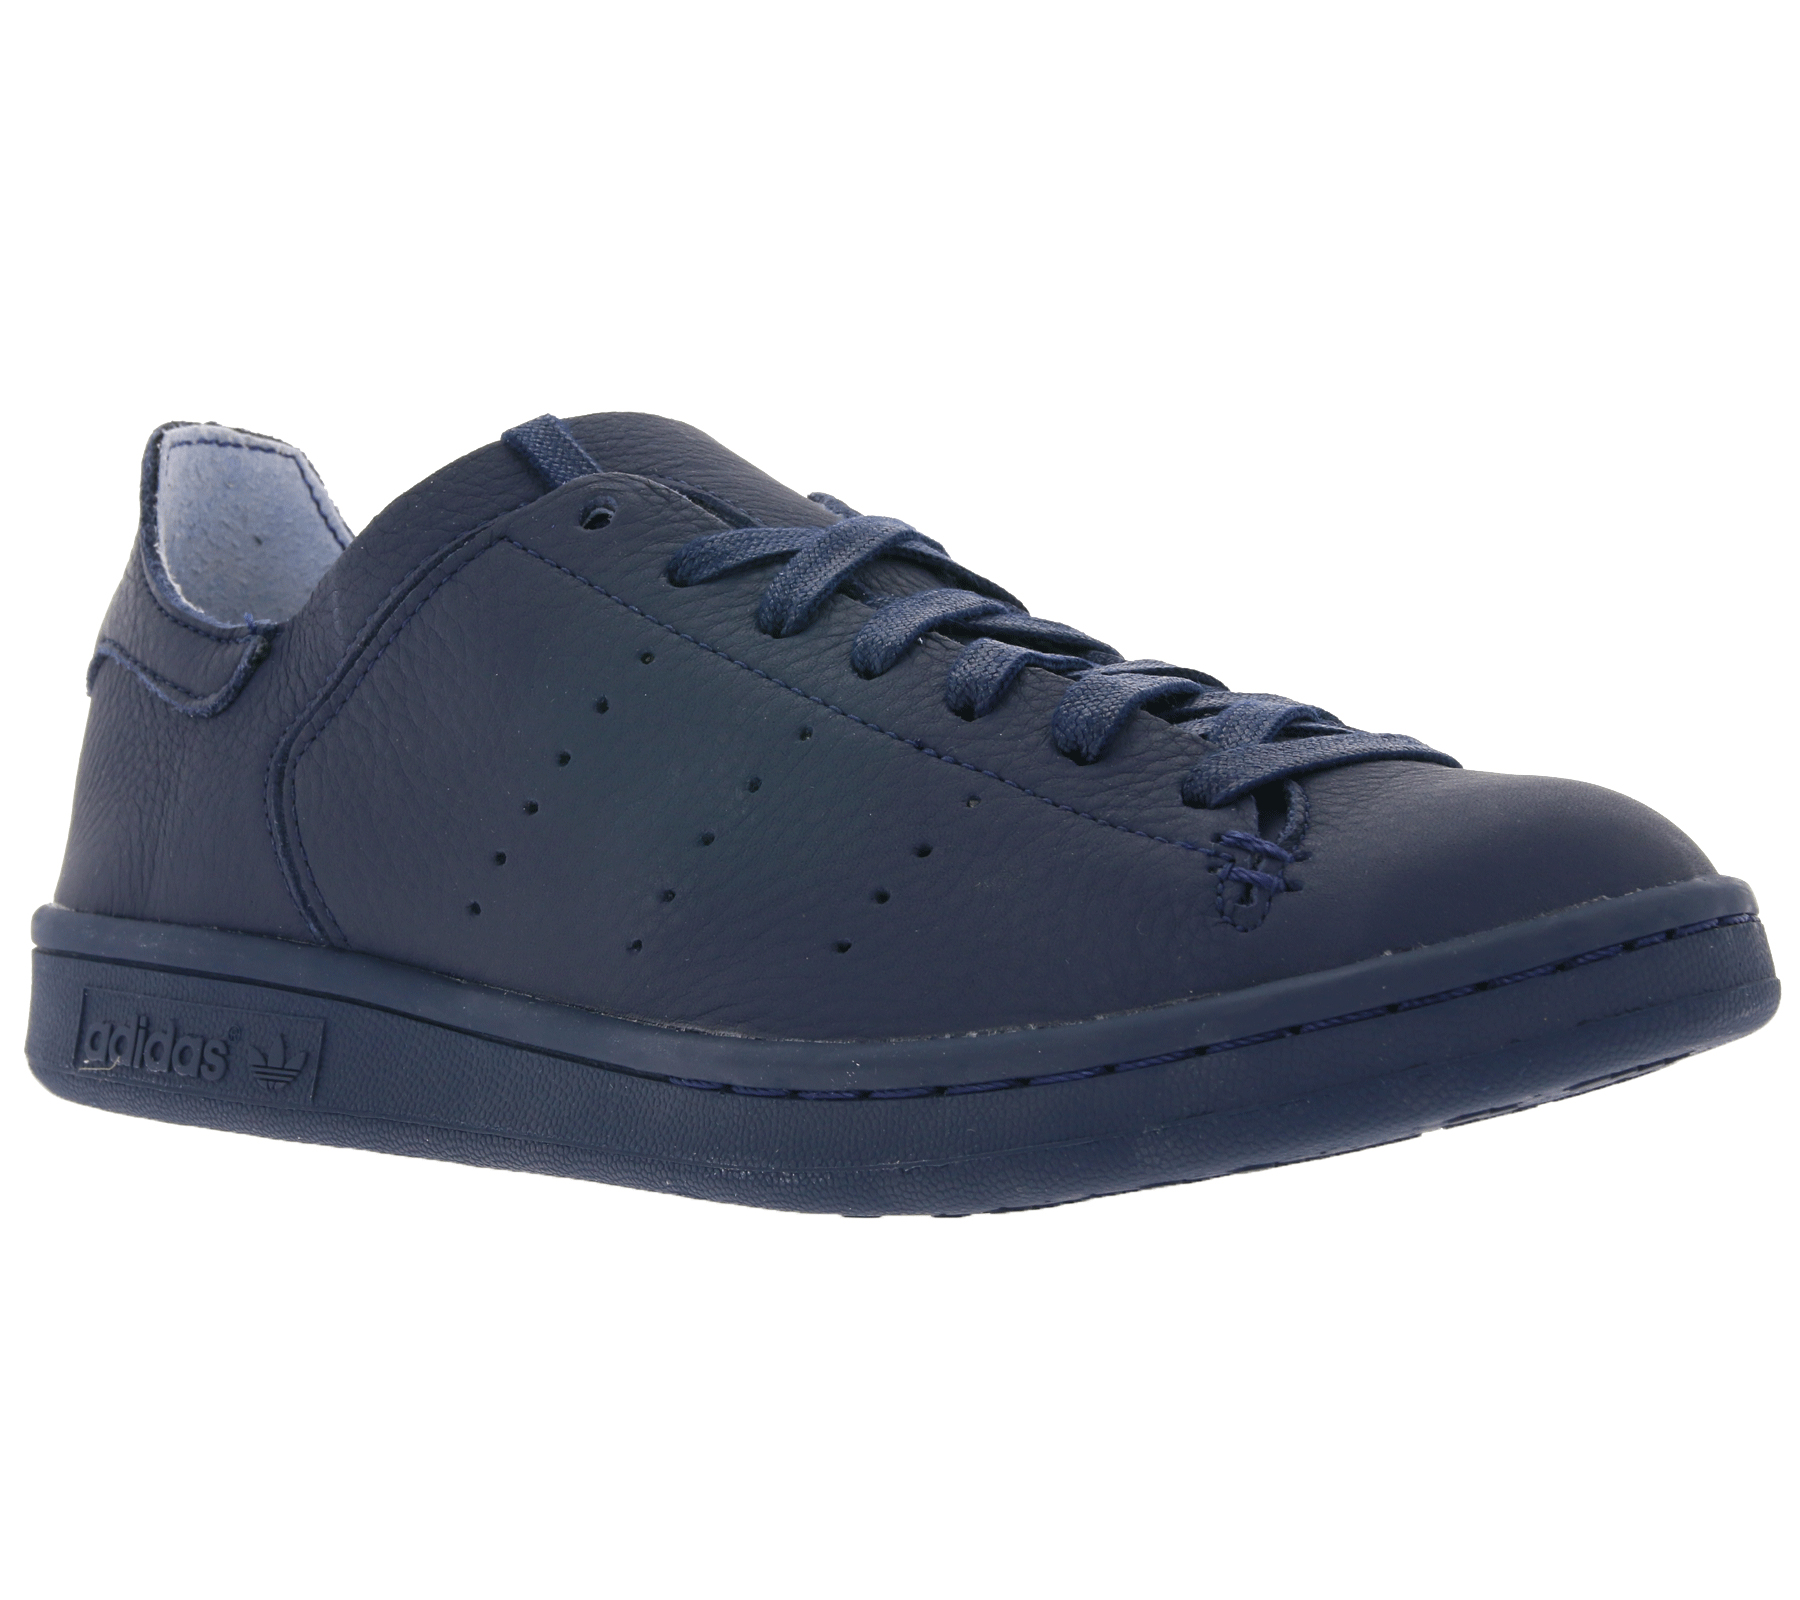 huge selection of 18543 26252 Details zu adidas Damen-Sneaker Originals Stan Smith Lea Sock  Echtleder-Schuhe Blau